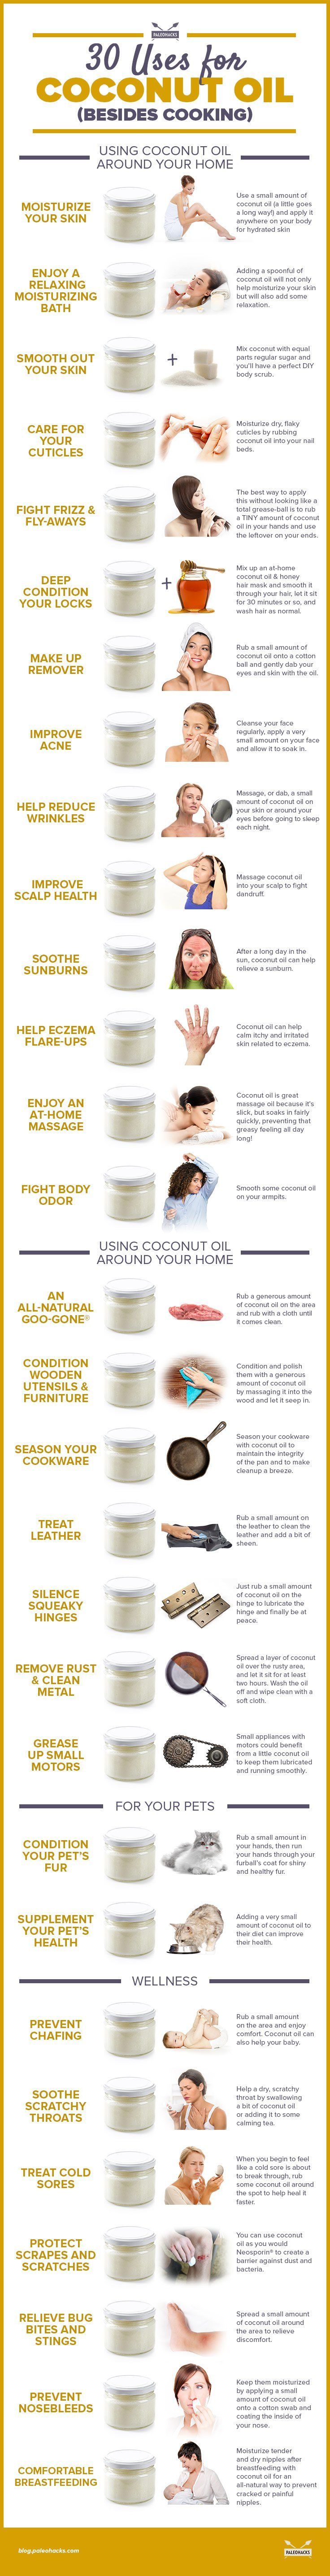 30 Uses for Coconut Oil (Besides Cooking)